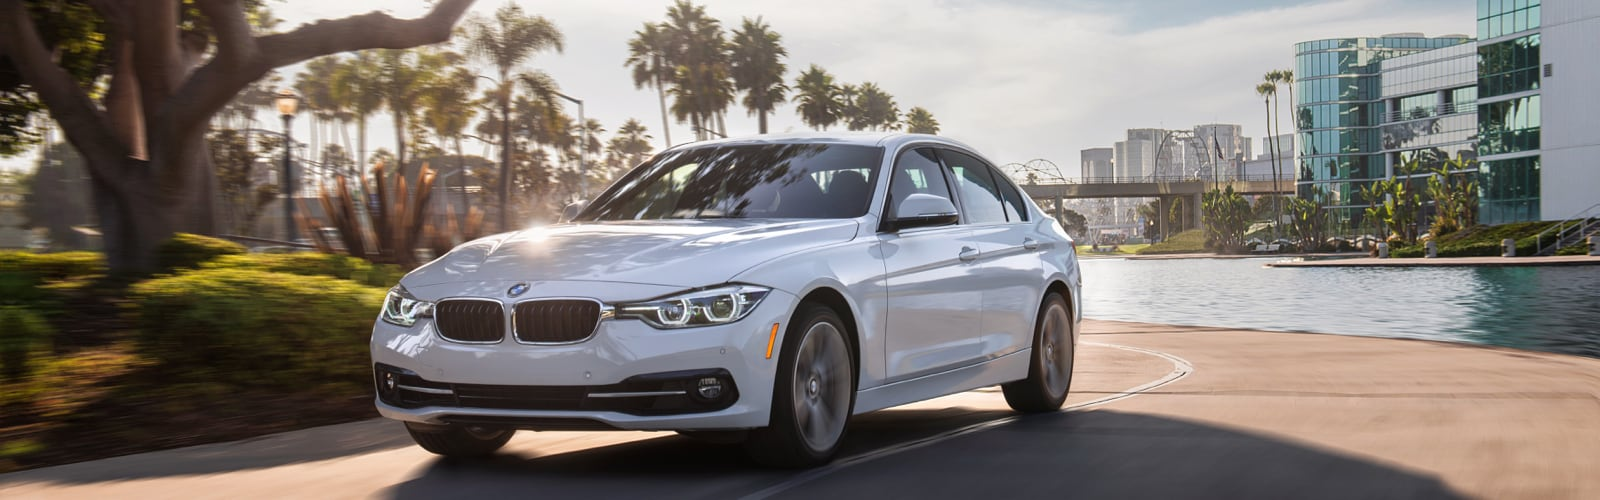 BMW 3 series lease deals Image